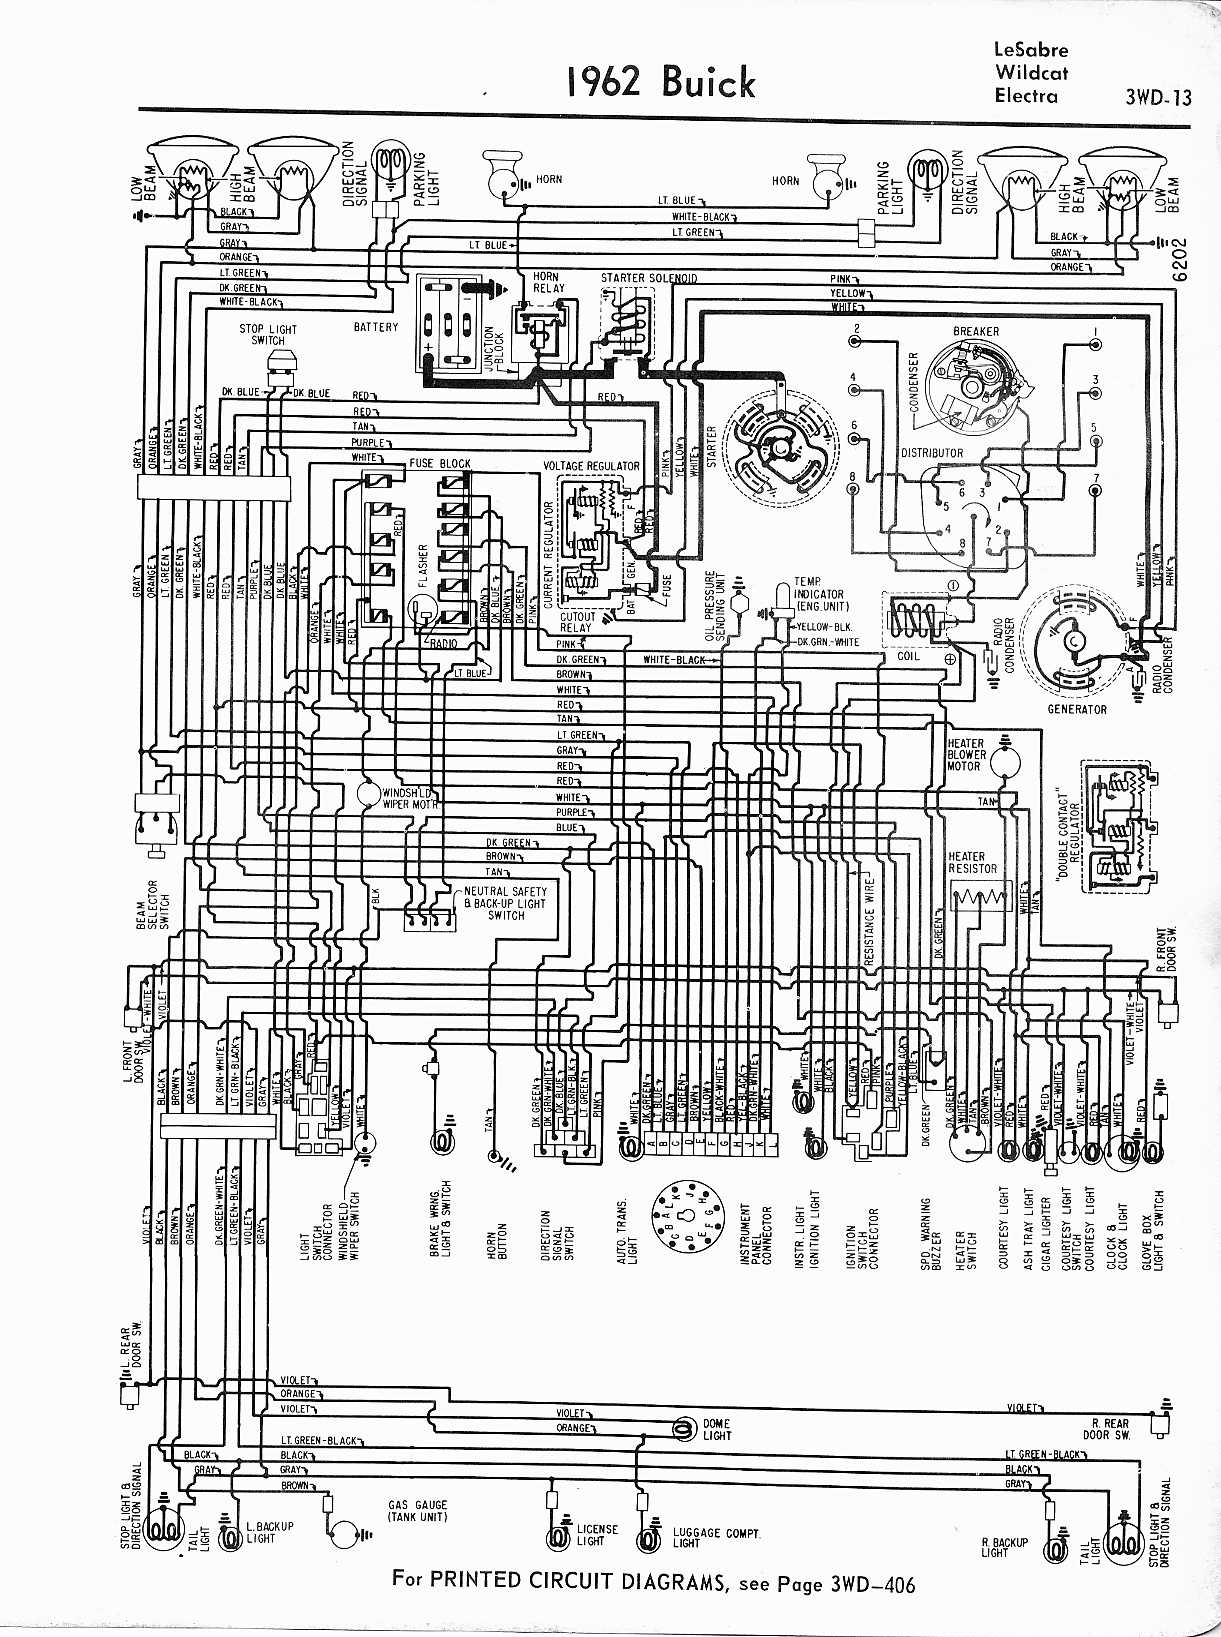 Engine Diagram 1991 Cadillac Deville Fuel Filter Location Cadillac